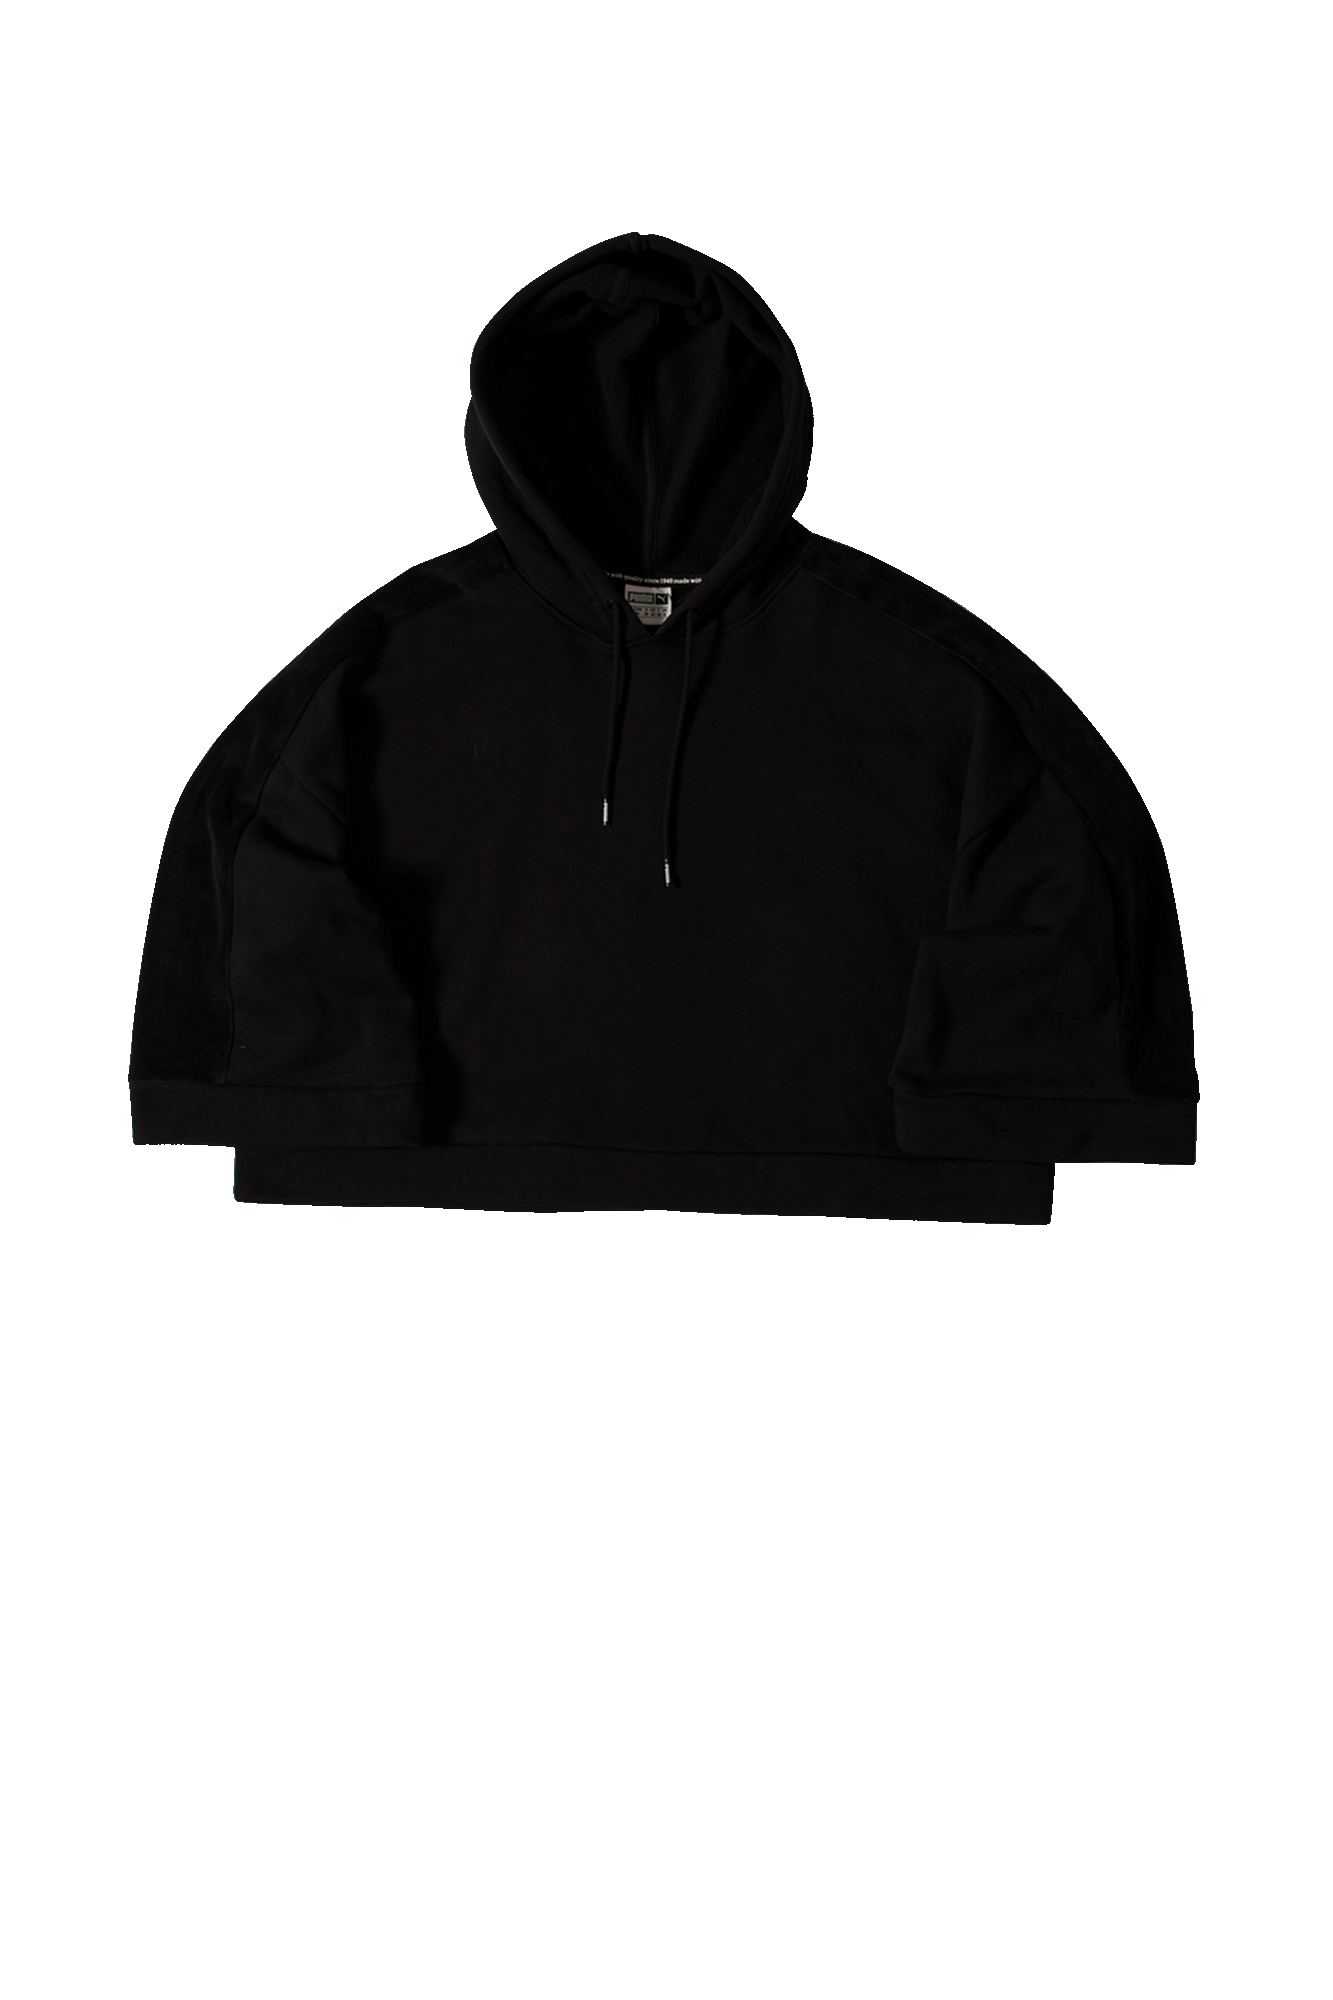 Xtreme Cropped Hooded sweatshirt Black